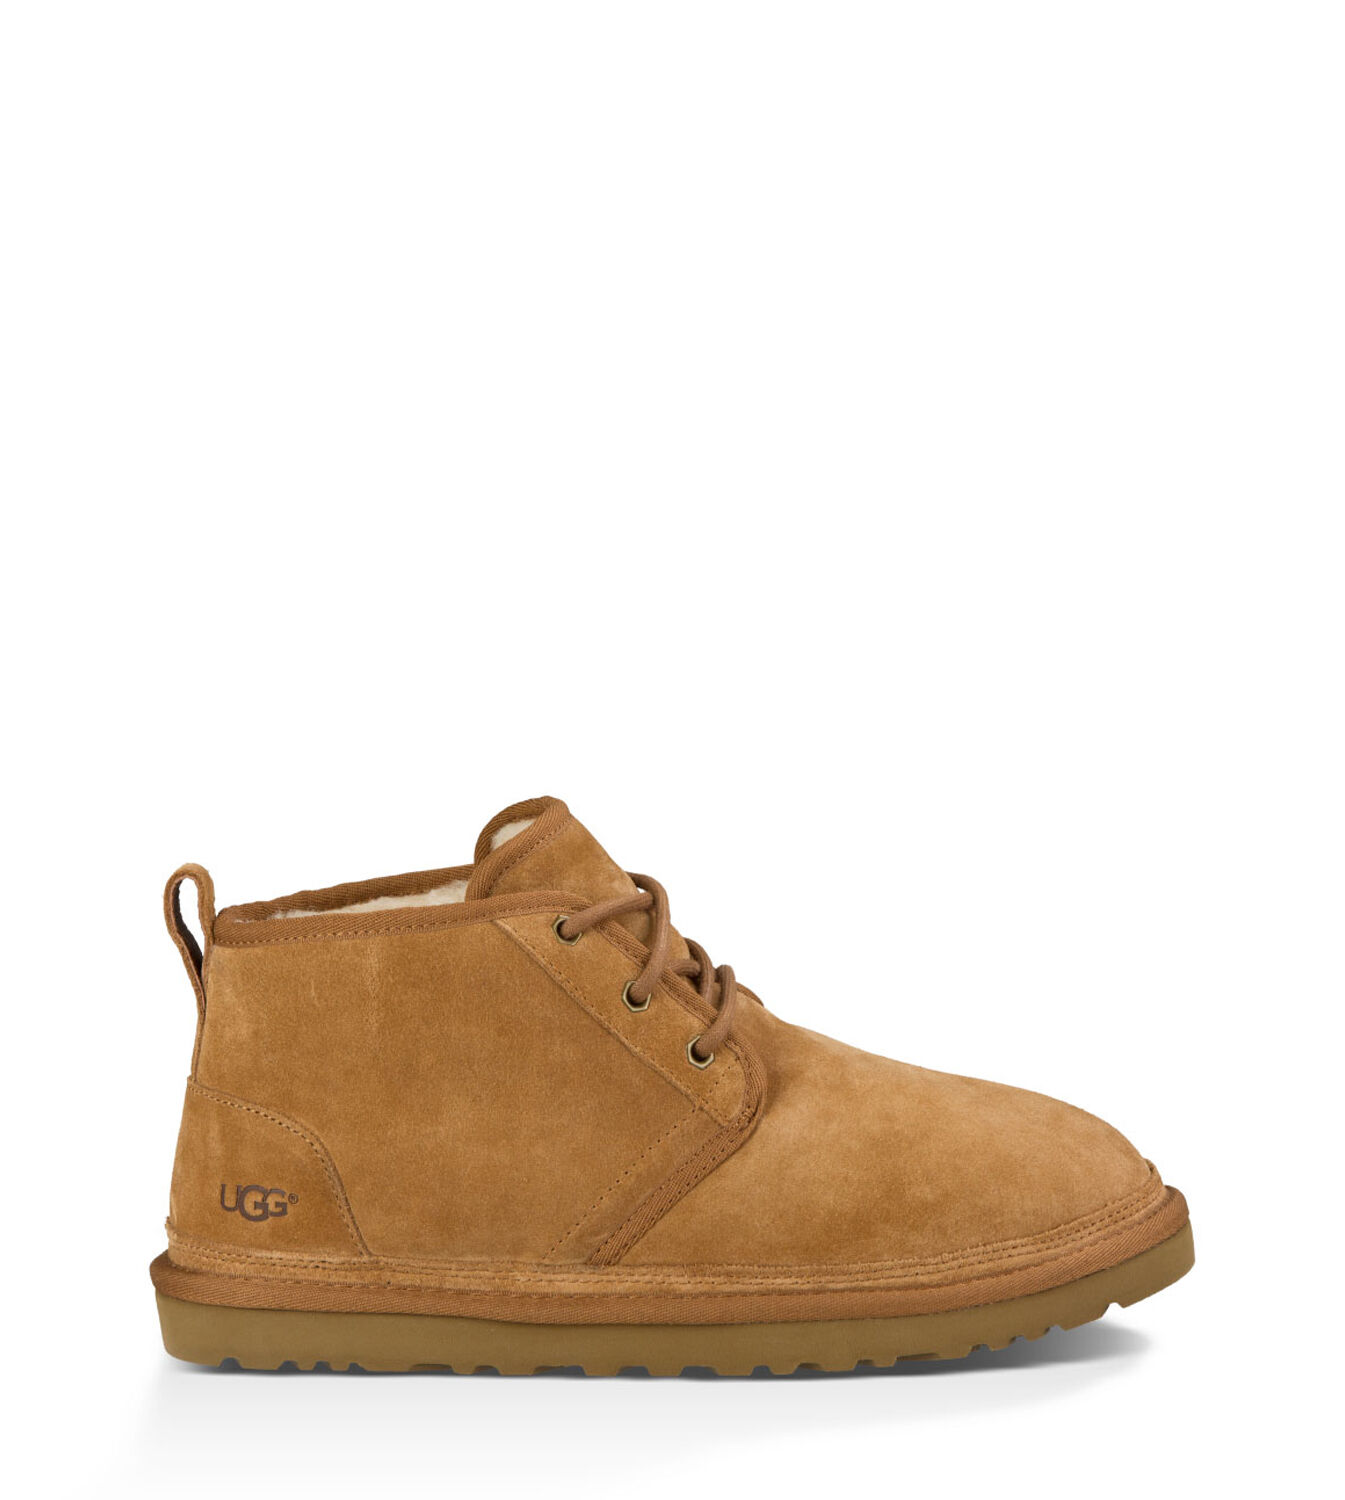 Ugg Neumel Classic Boots Men